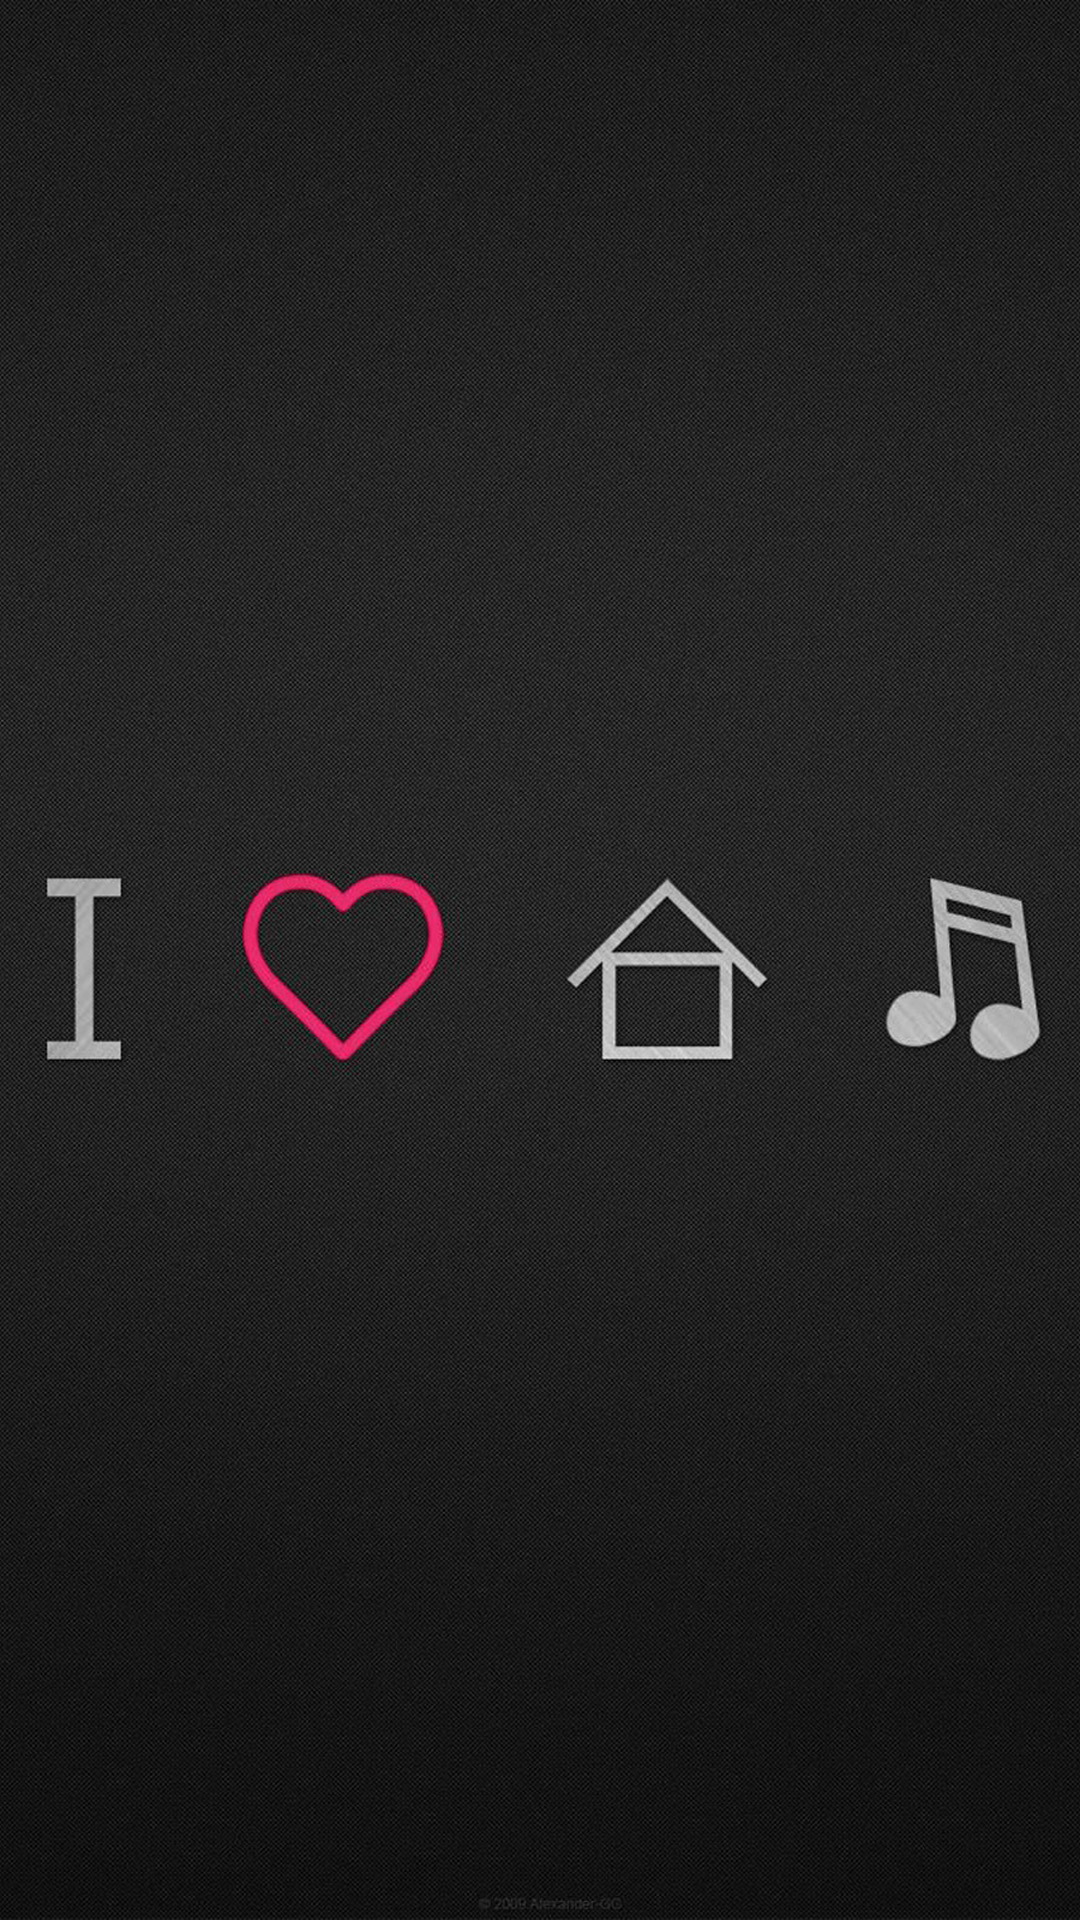 Cute Animated Wallpapers Free Download 70 Music Iphone Wallpapers For Music Manias